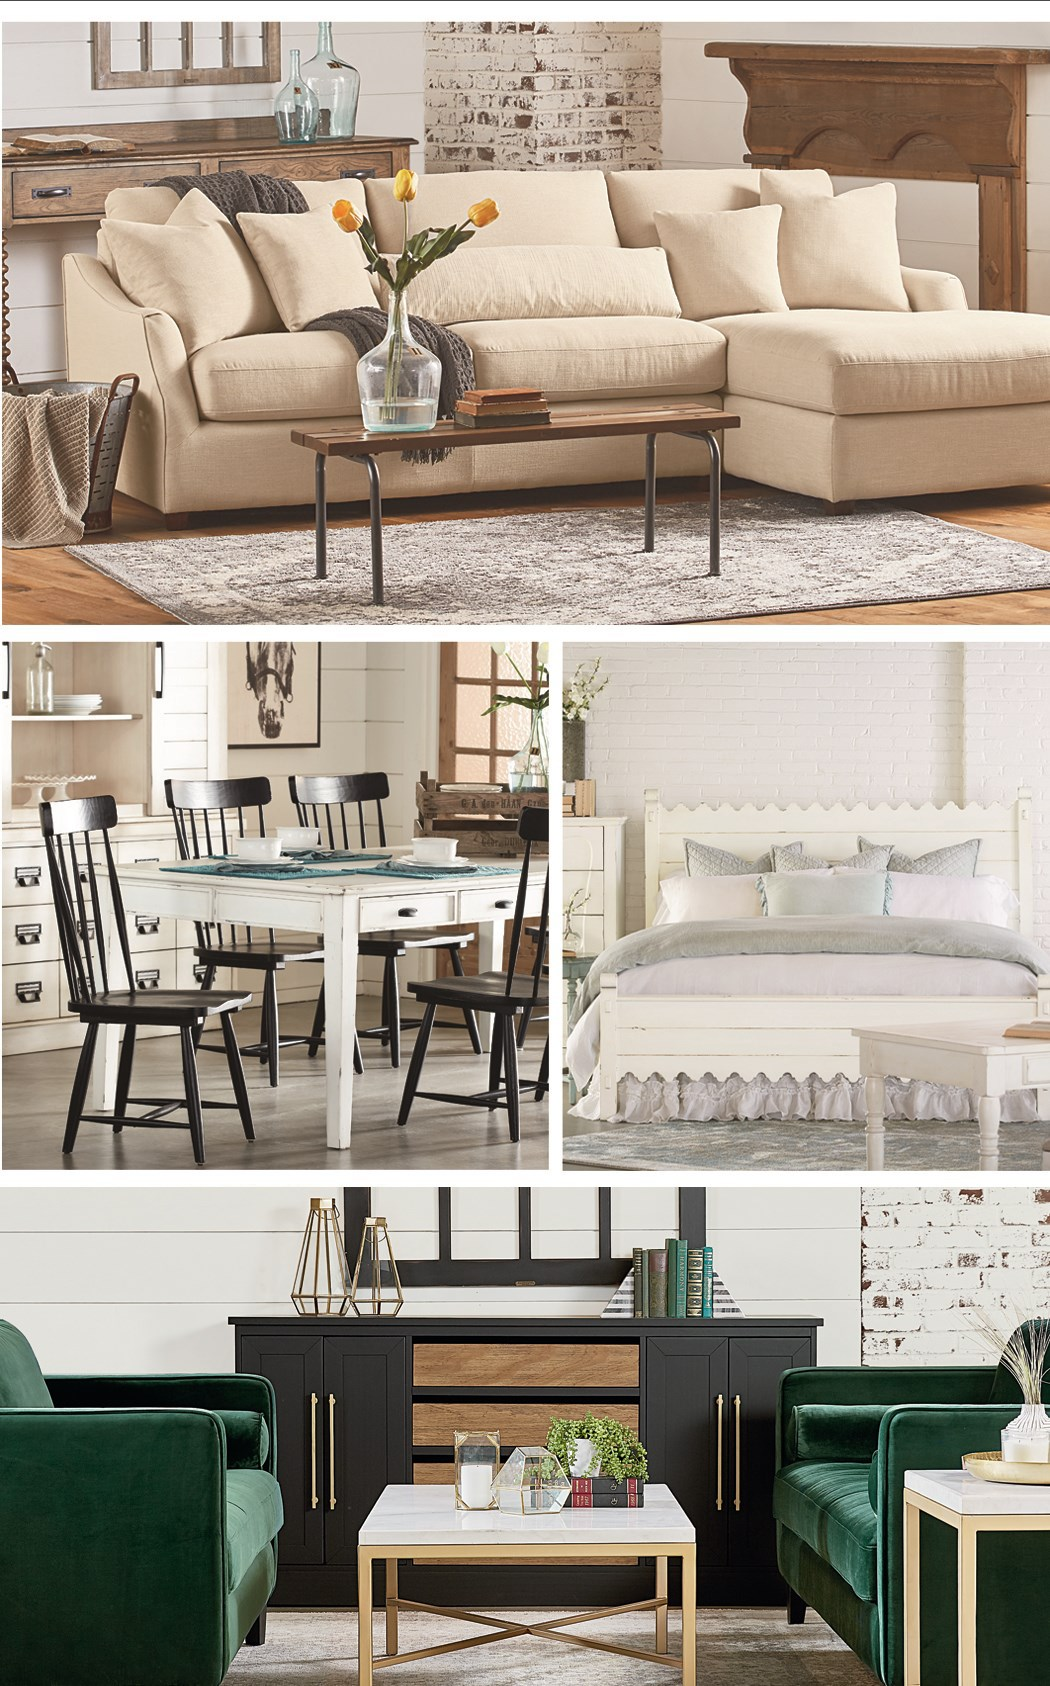 Magnolia Home - Joanna Gaines